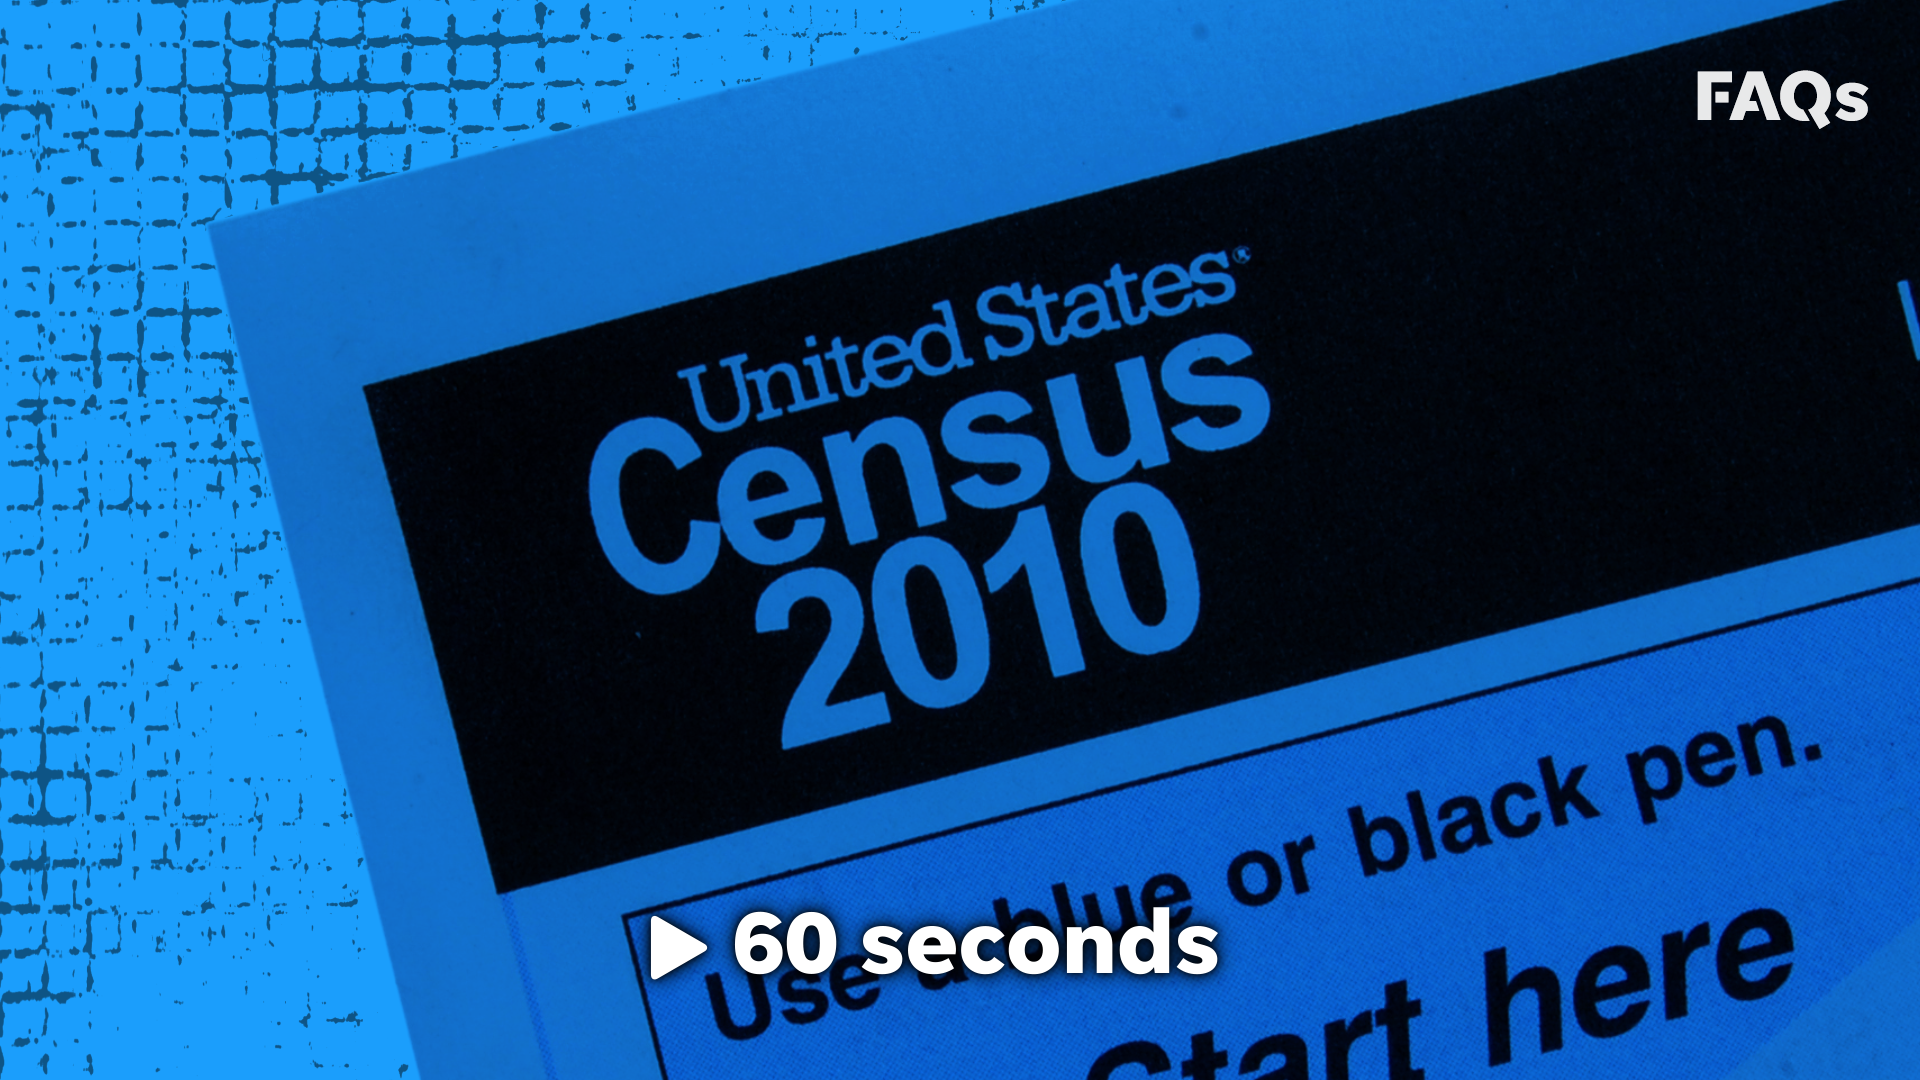 US Census Bureau wants to pay metro Detroiters $19/hour for 2020 census job